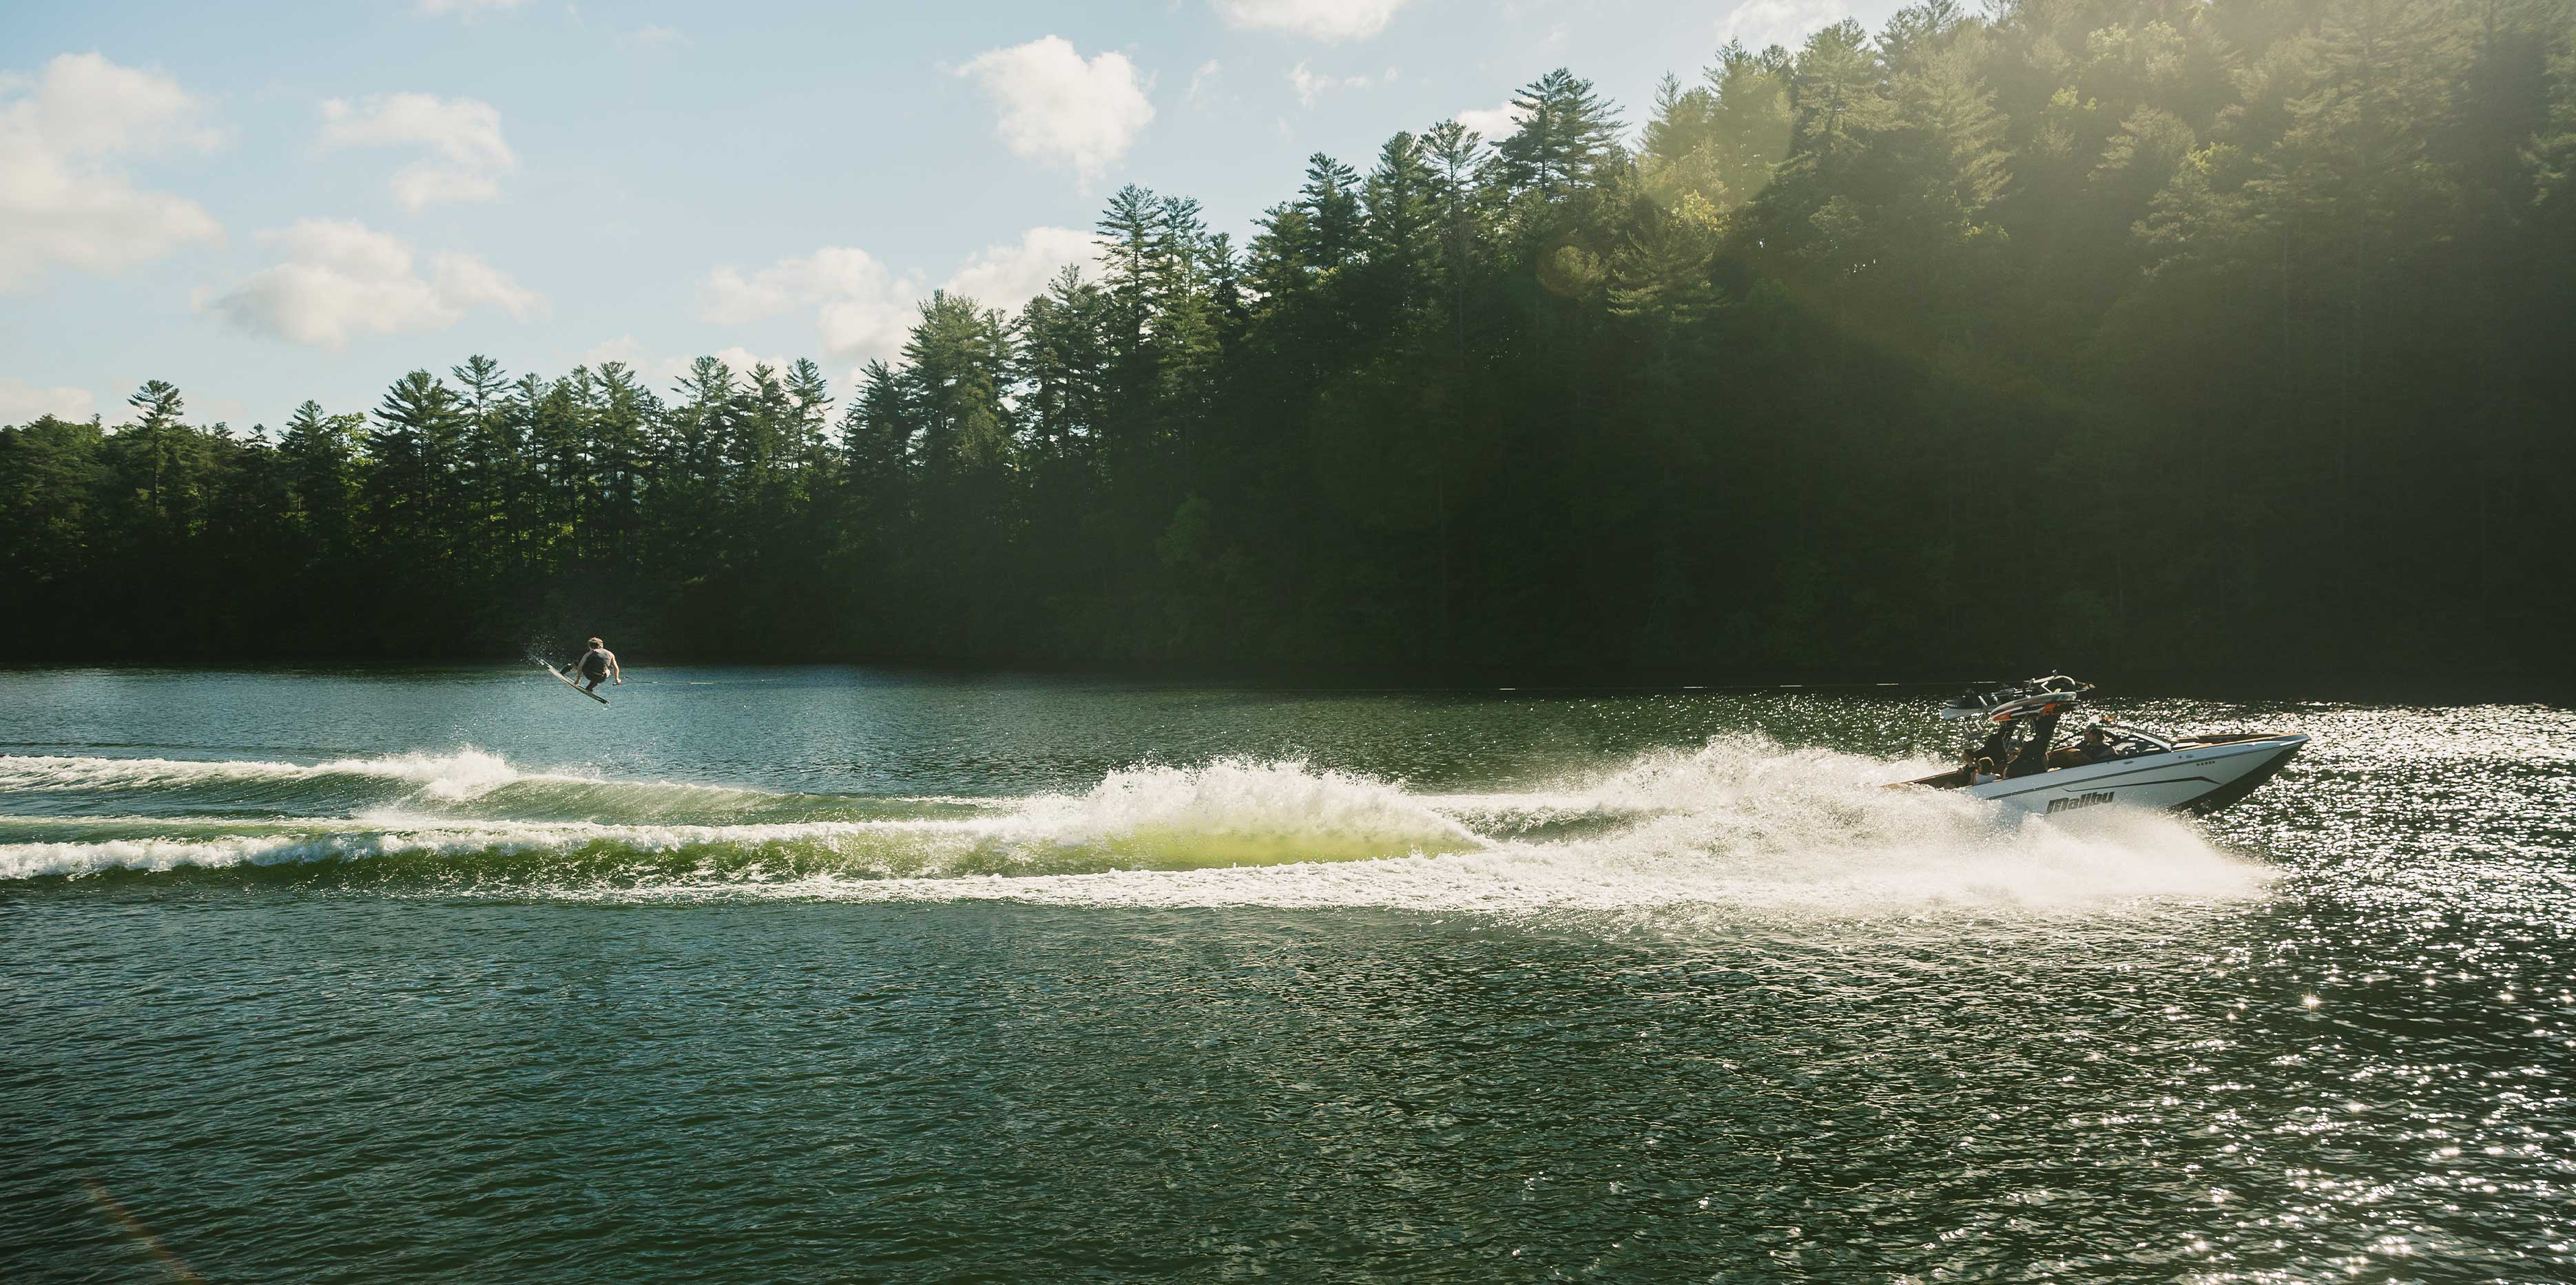 Wakeboarding behind the 25 LSV